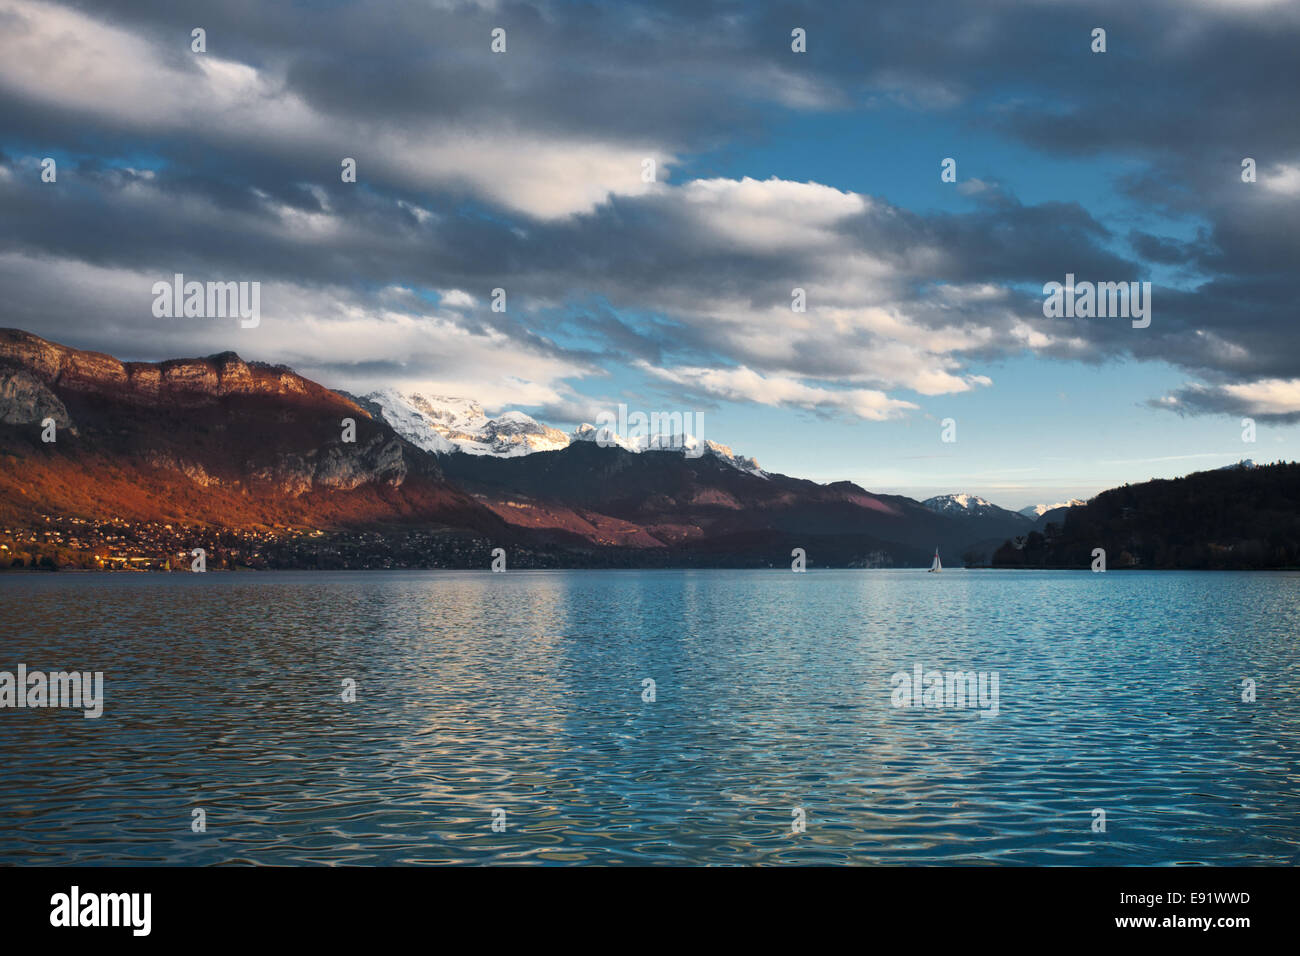 Partly Cloudy Annecy Lake - Stock Image